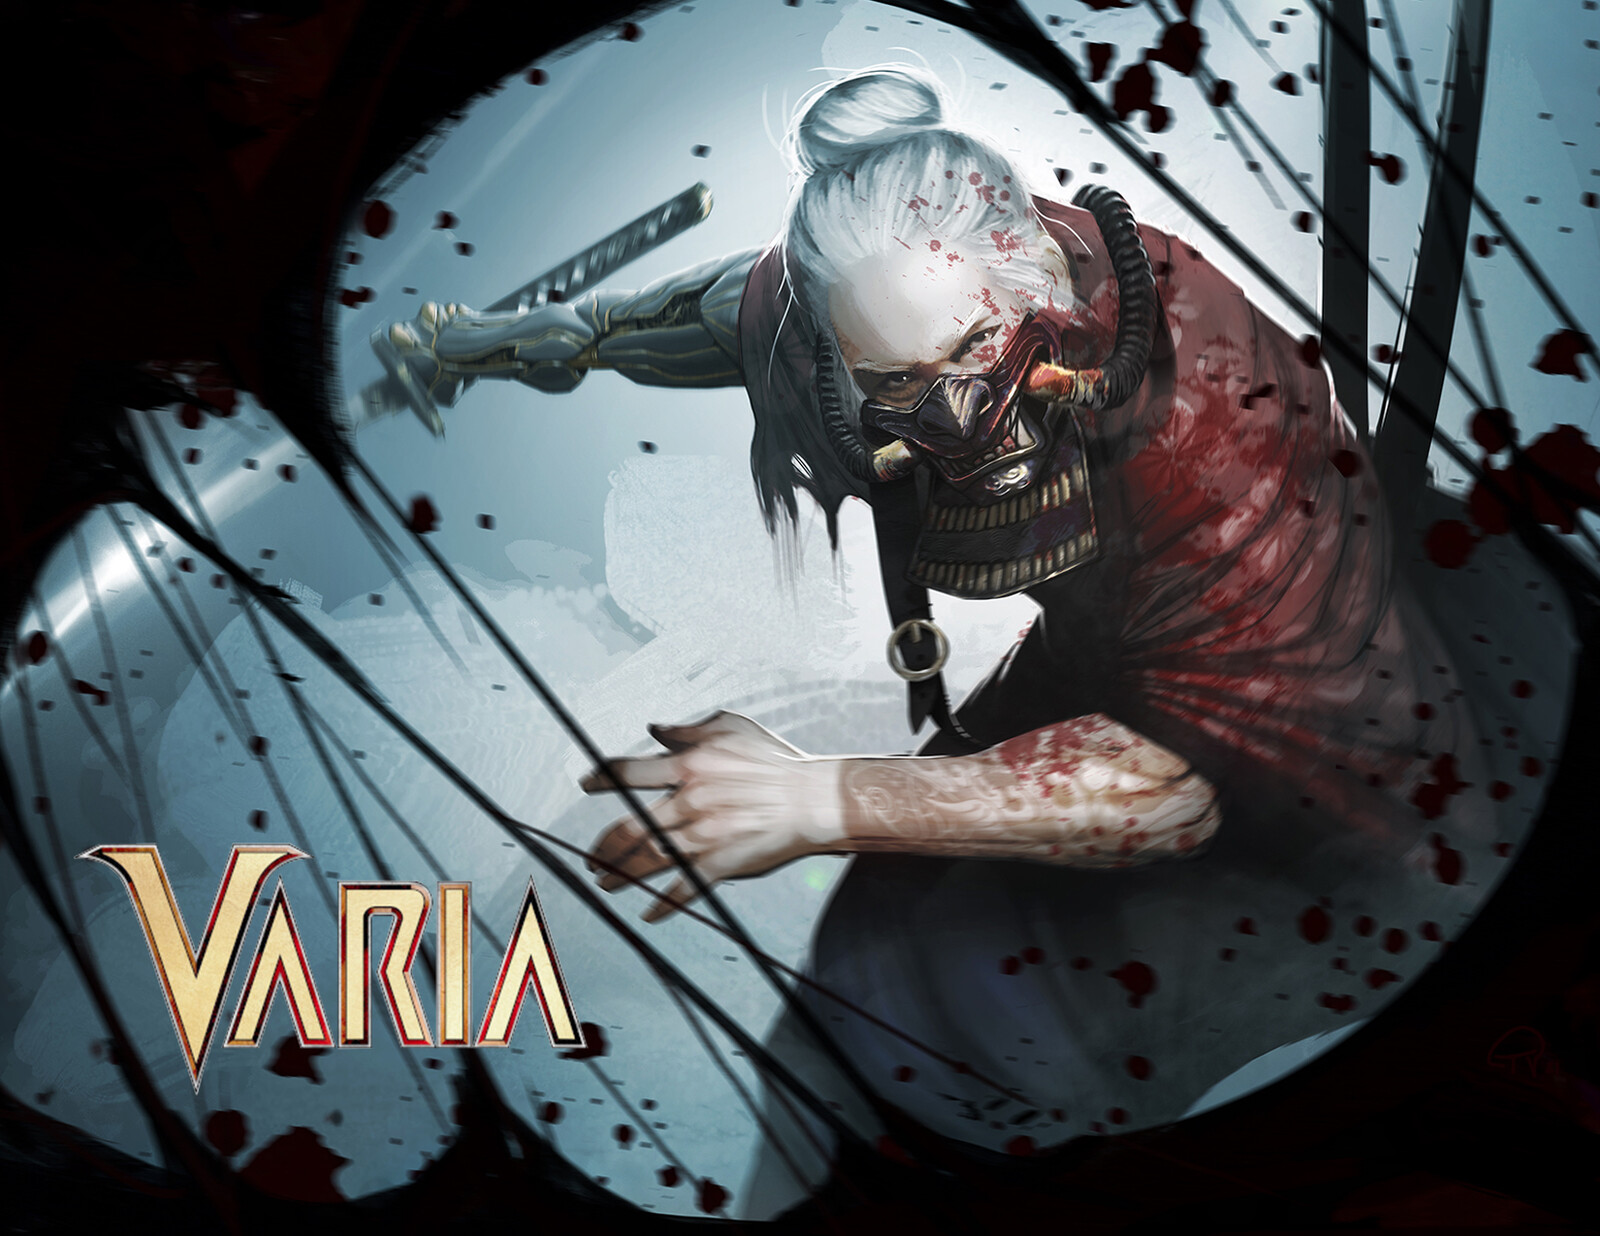 Varia - The First Person Card Game